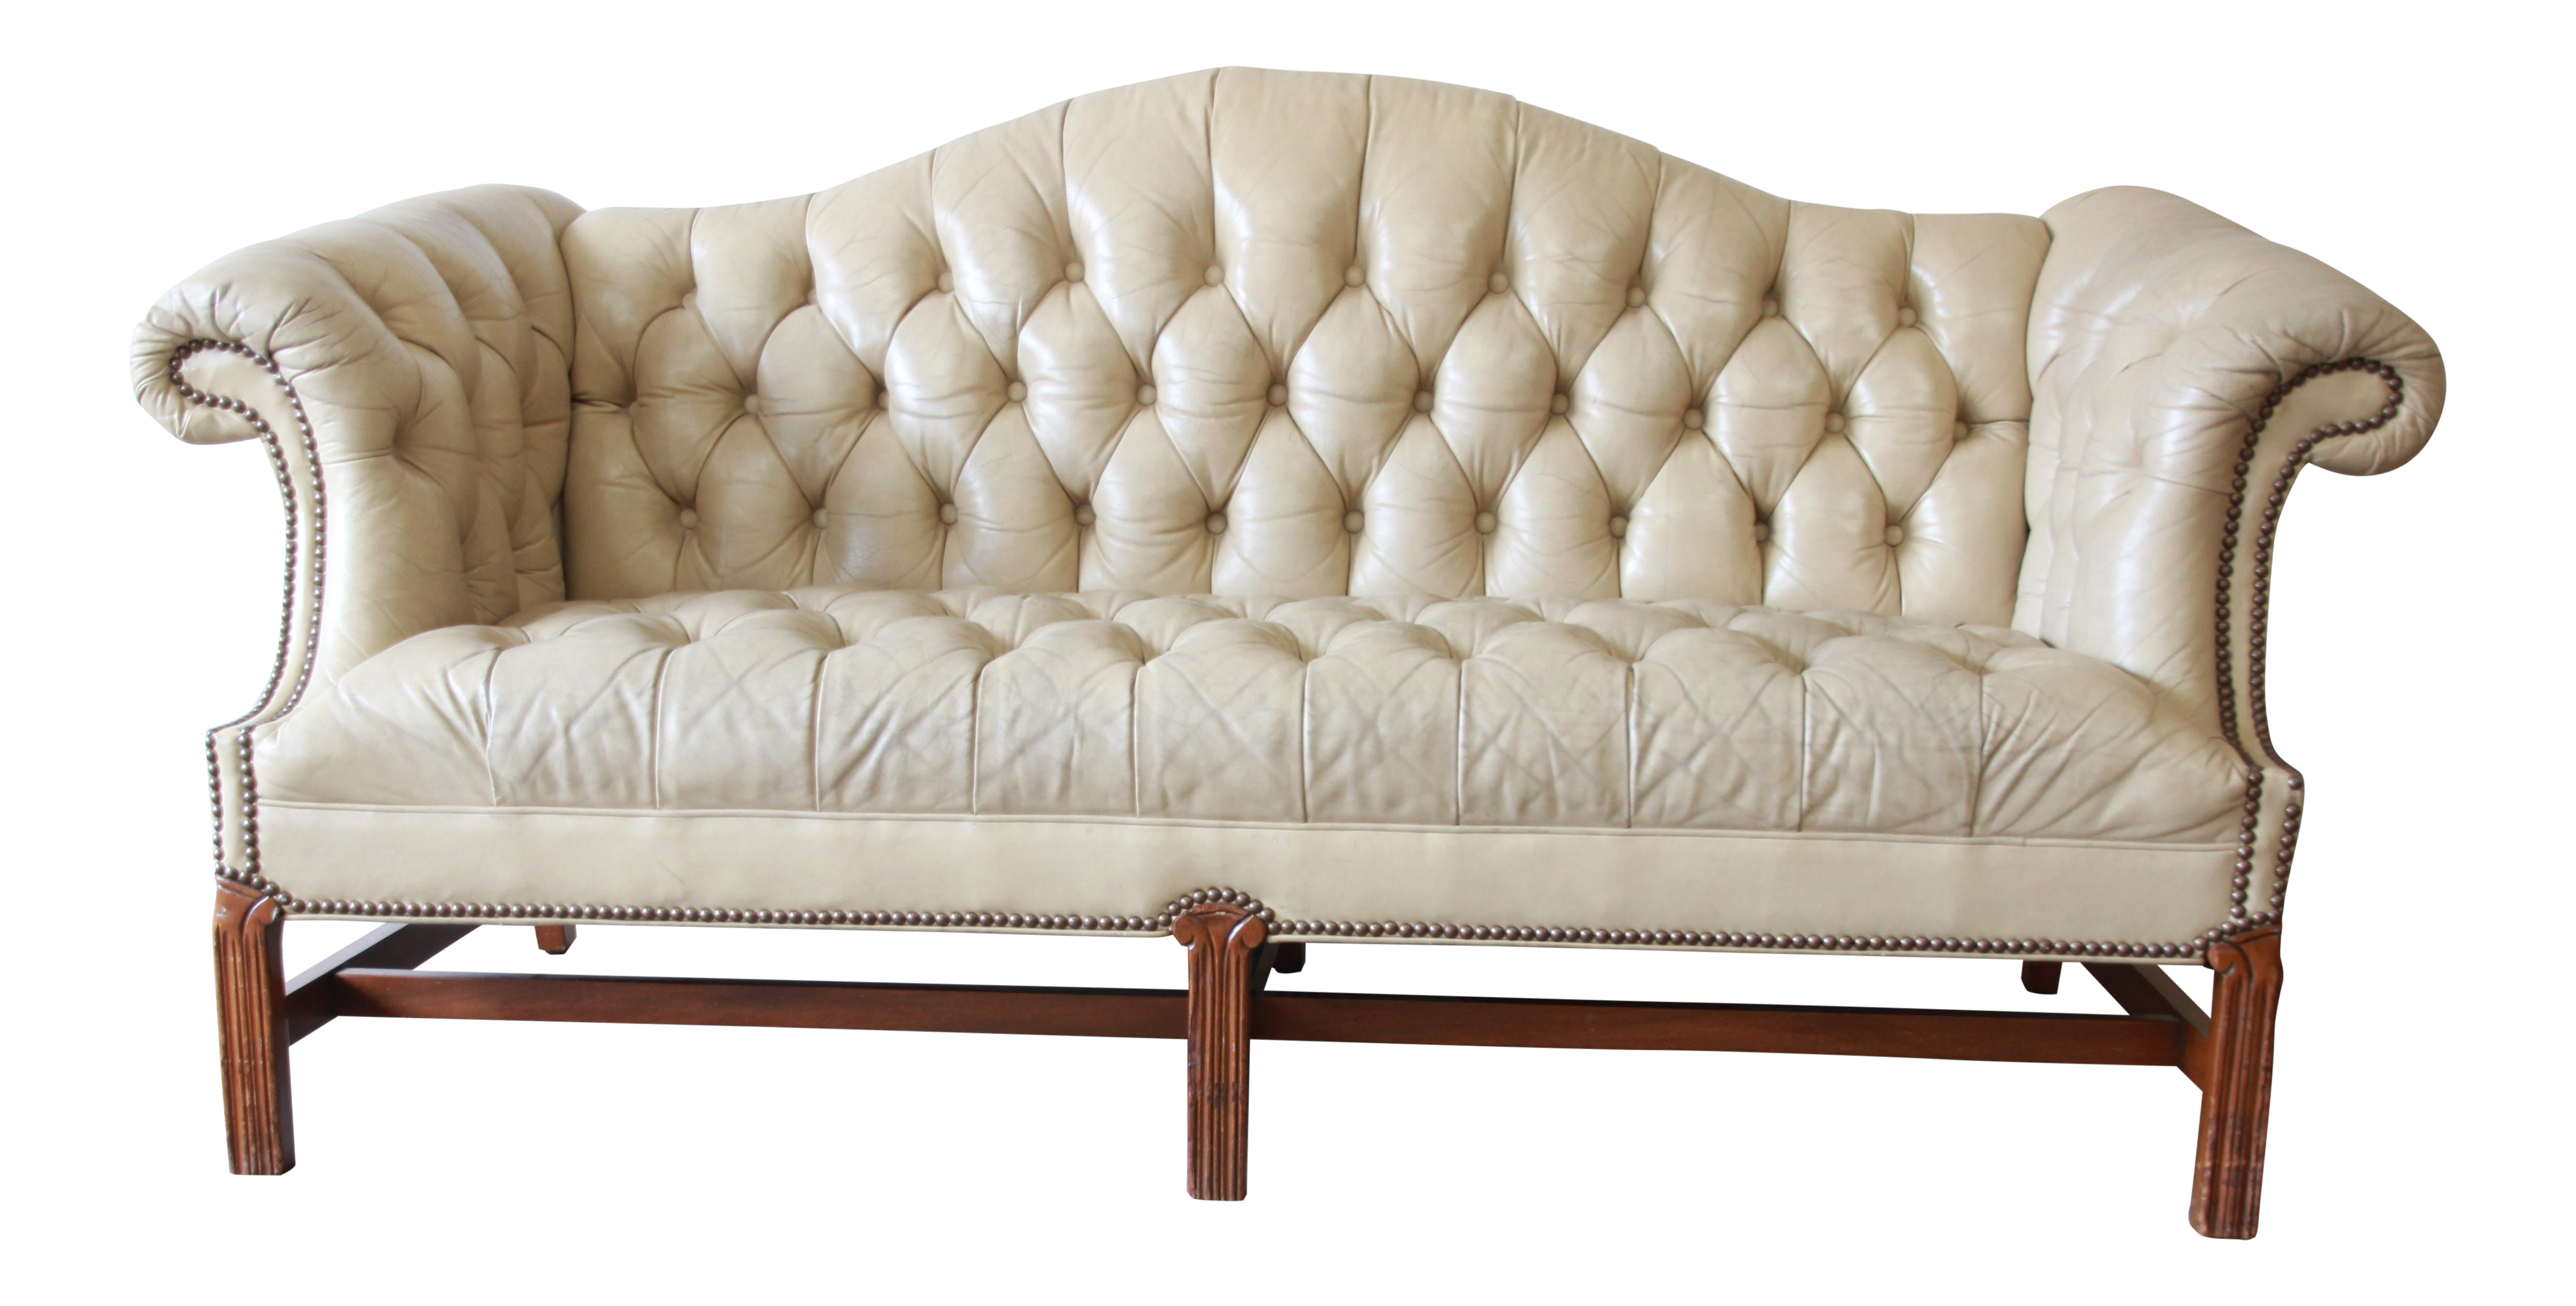 Vintage Tufted Tan Leather Chesterfield Sofa